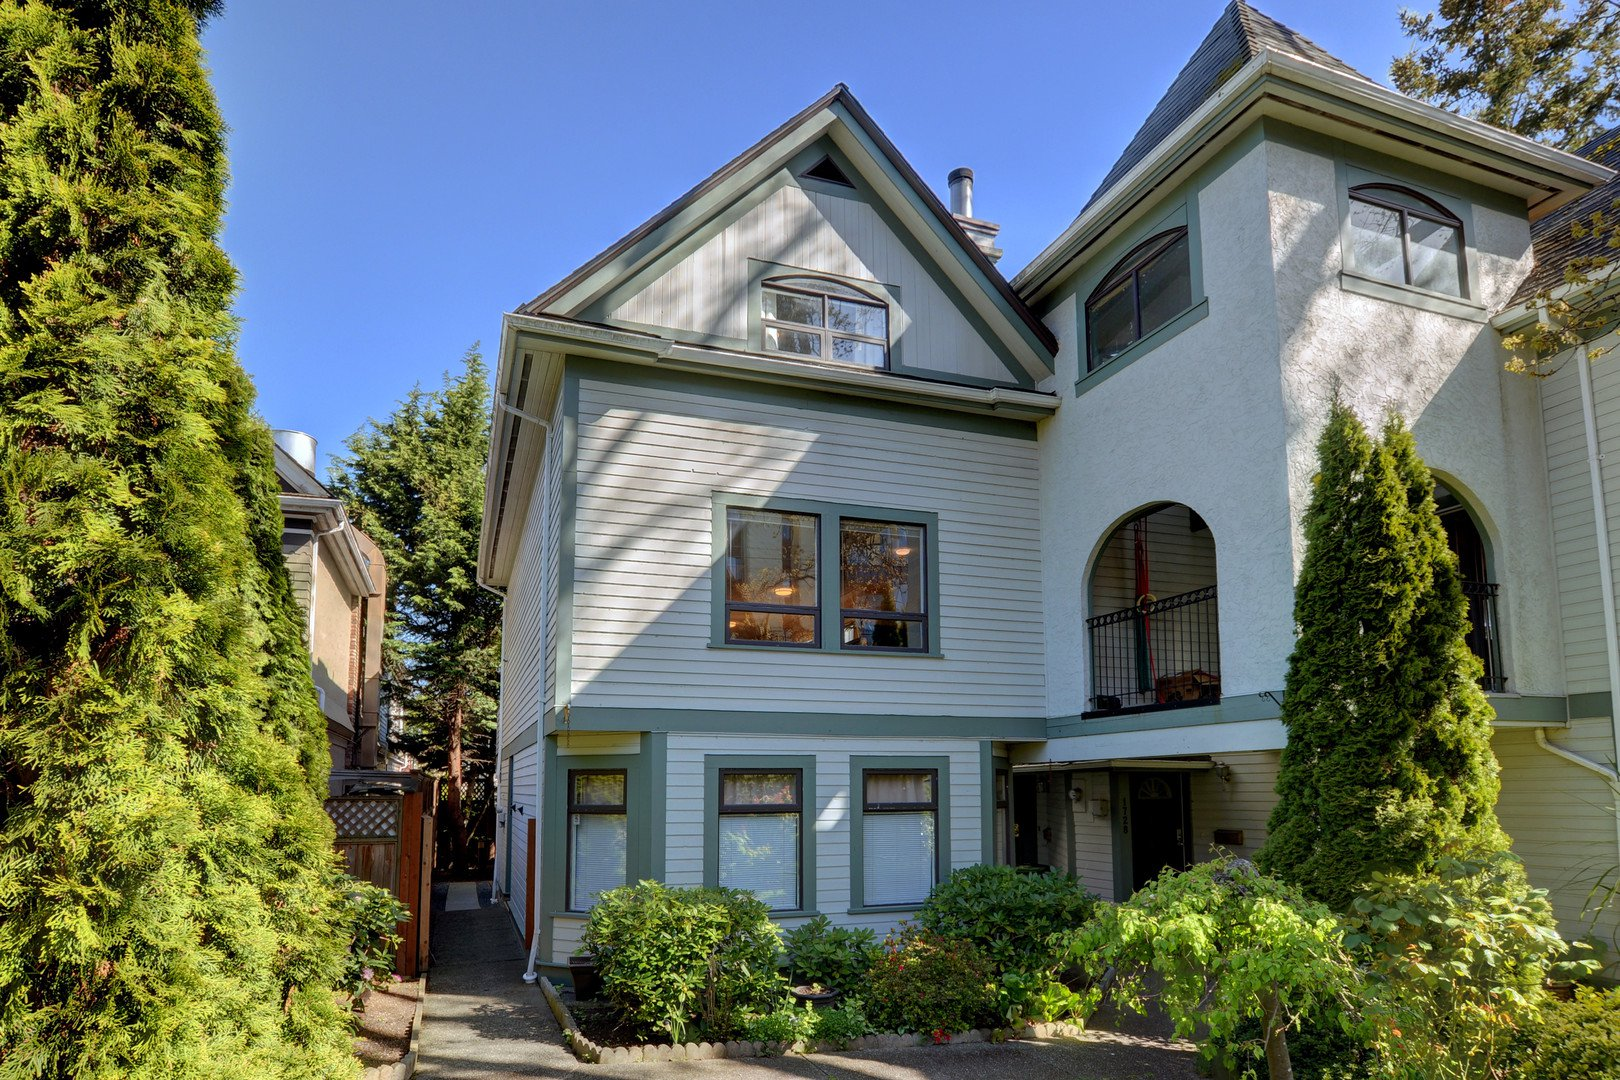 Main Photo: 1720 Leighton Road in VICTORIA: Vi Jubilee Townhouse for sale (Victoria)  : MLS®# 390628